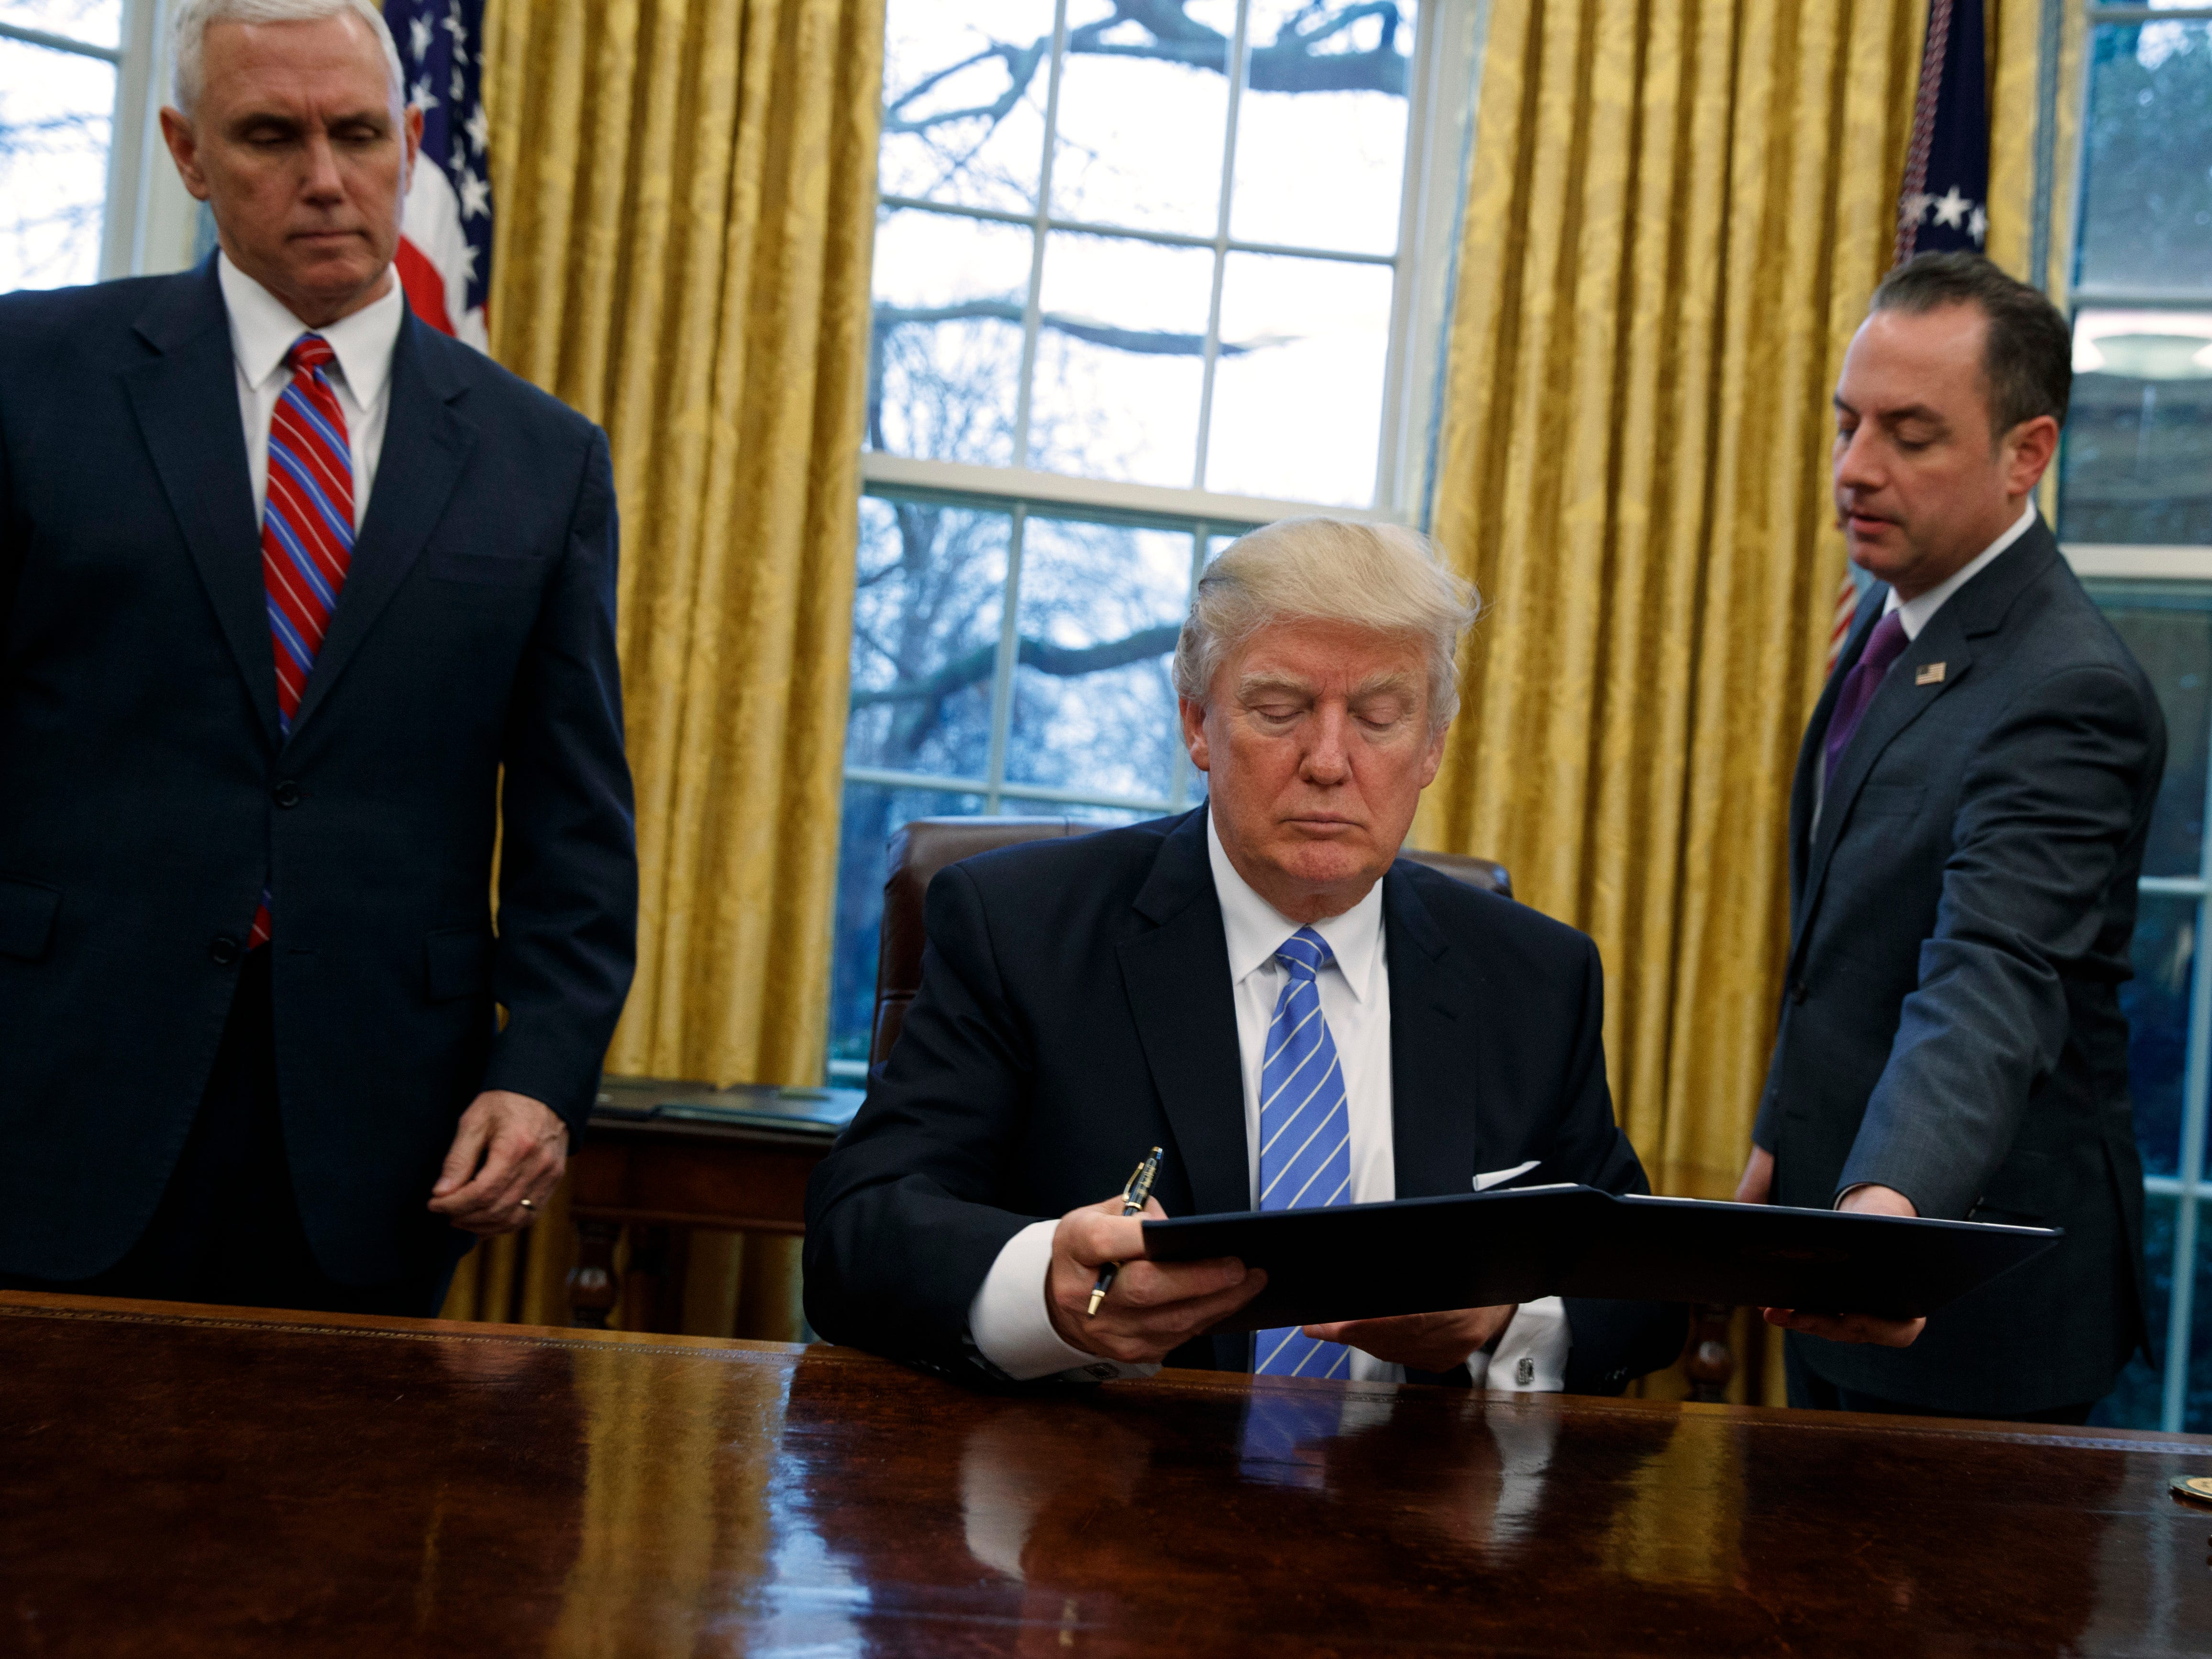 Vice President Mike Pence watches (left) as White House Chief of Staff Reince Priebus hands an executive order to withdraw the U.S. from the 12-nation Trans-Pacific Partnership trade pact to President Donald Trump.